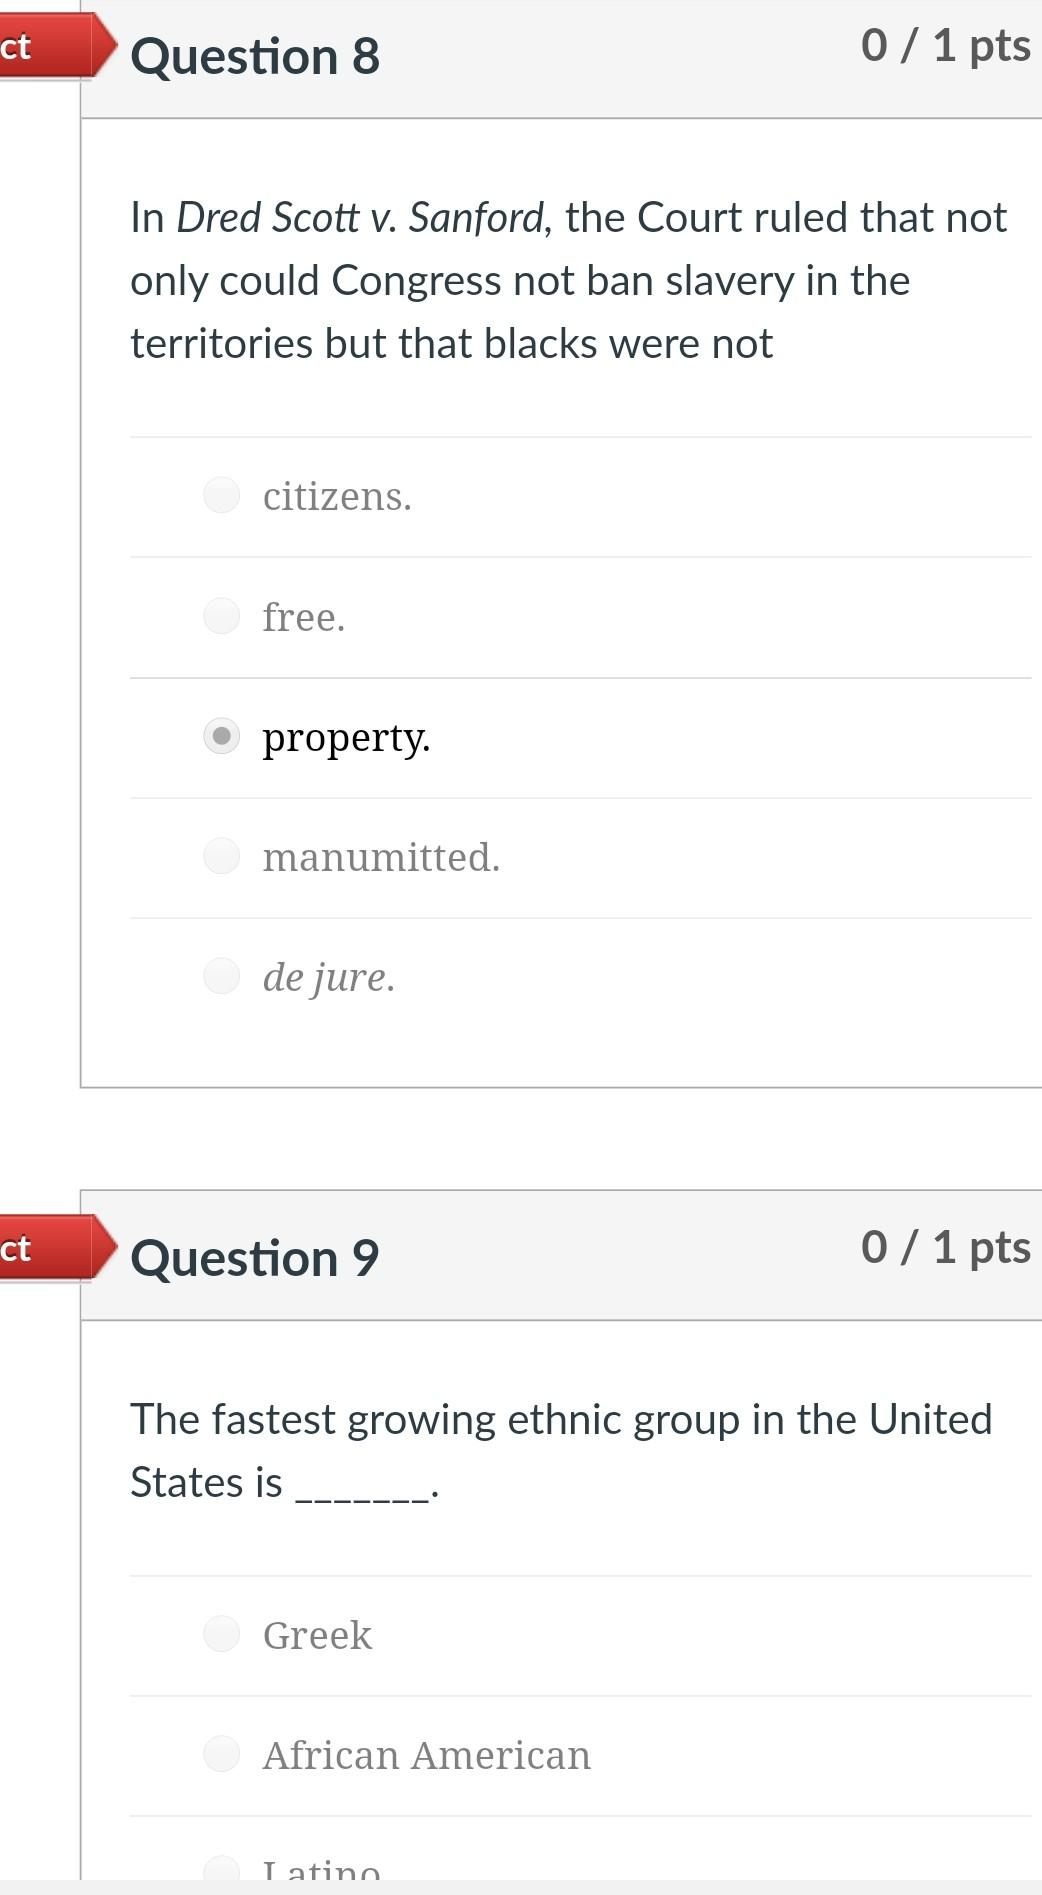 ct Question 8 0 / 1 pts In Dred Scott v. Sanford, the Court ruled that not only could Congress not ban slavery in the territo